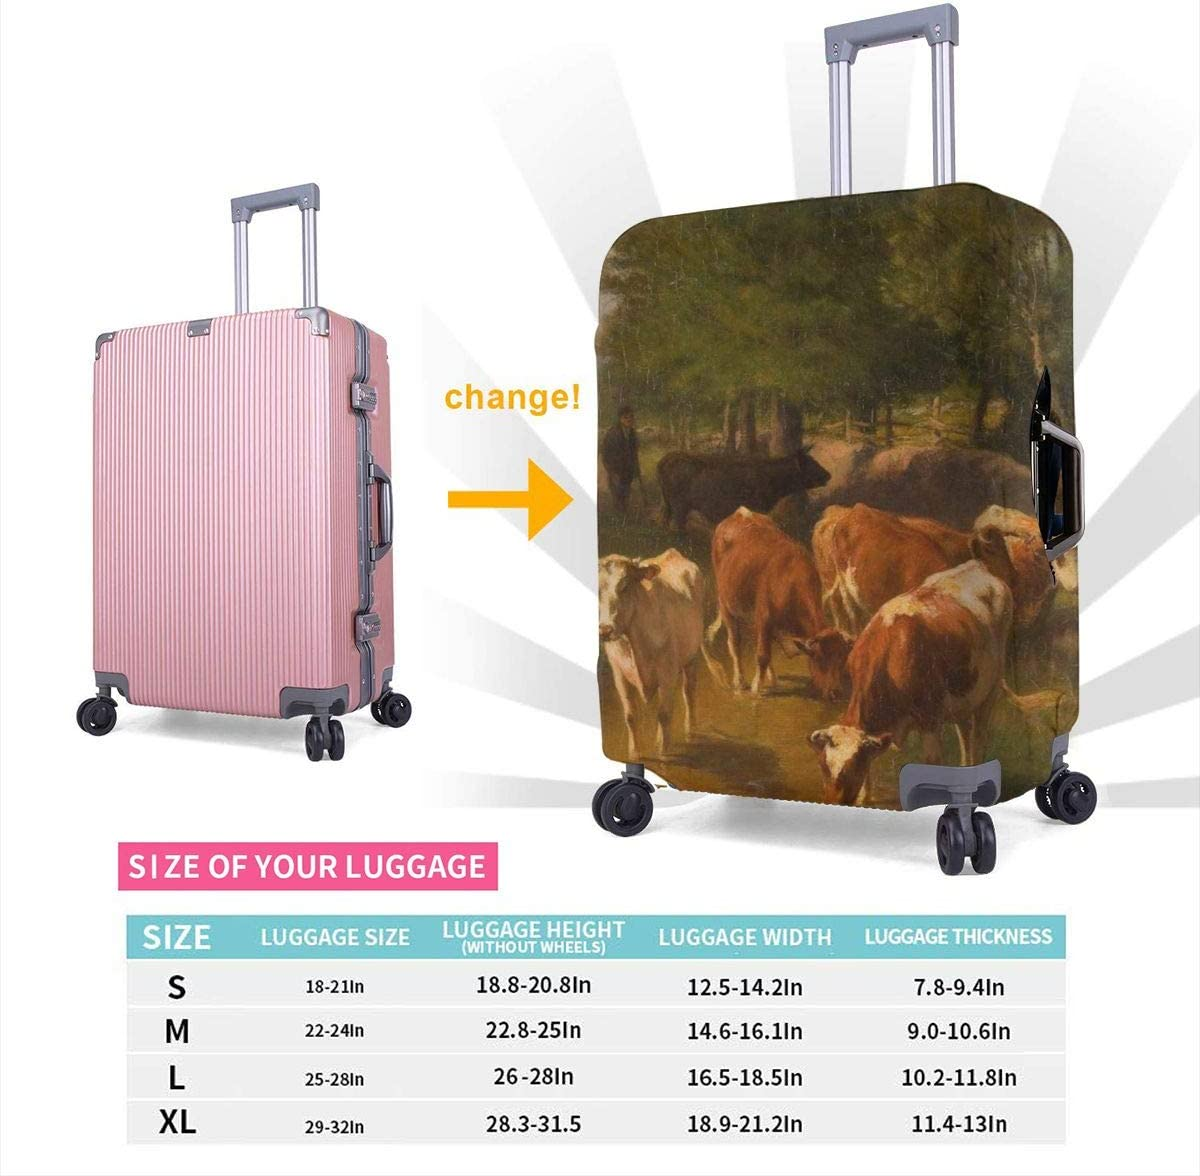 Yuotry Travel Luggage Cover Cattles Graze Zipper Suitcase Protector Luggage with Fixed Buckle Fits 18-32 Inch Luggage XL